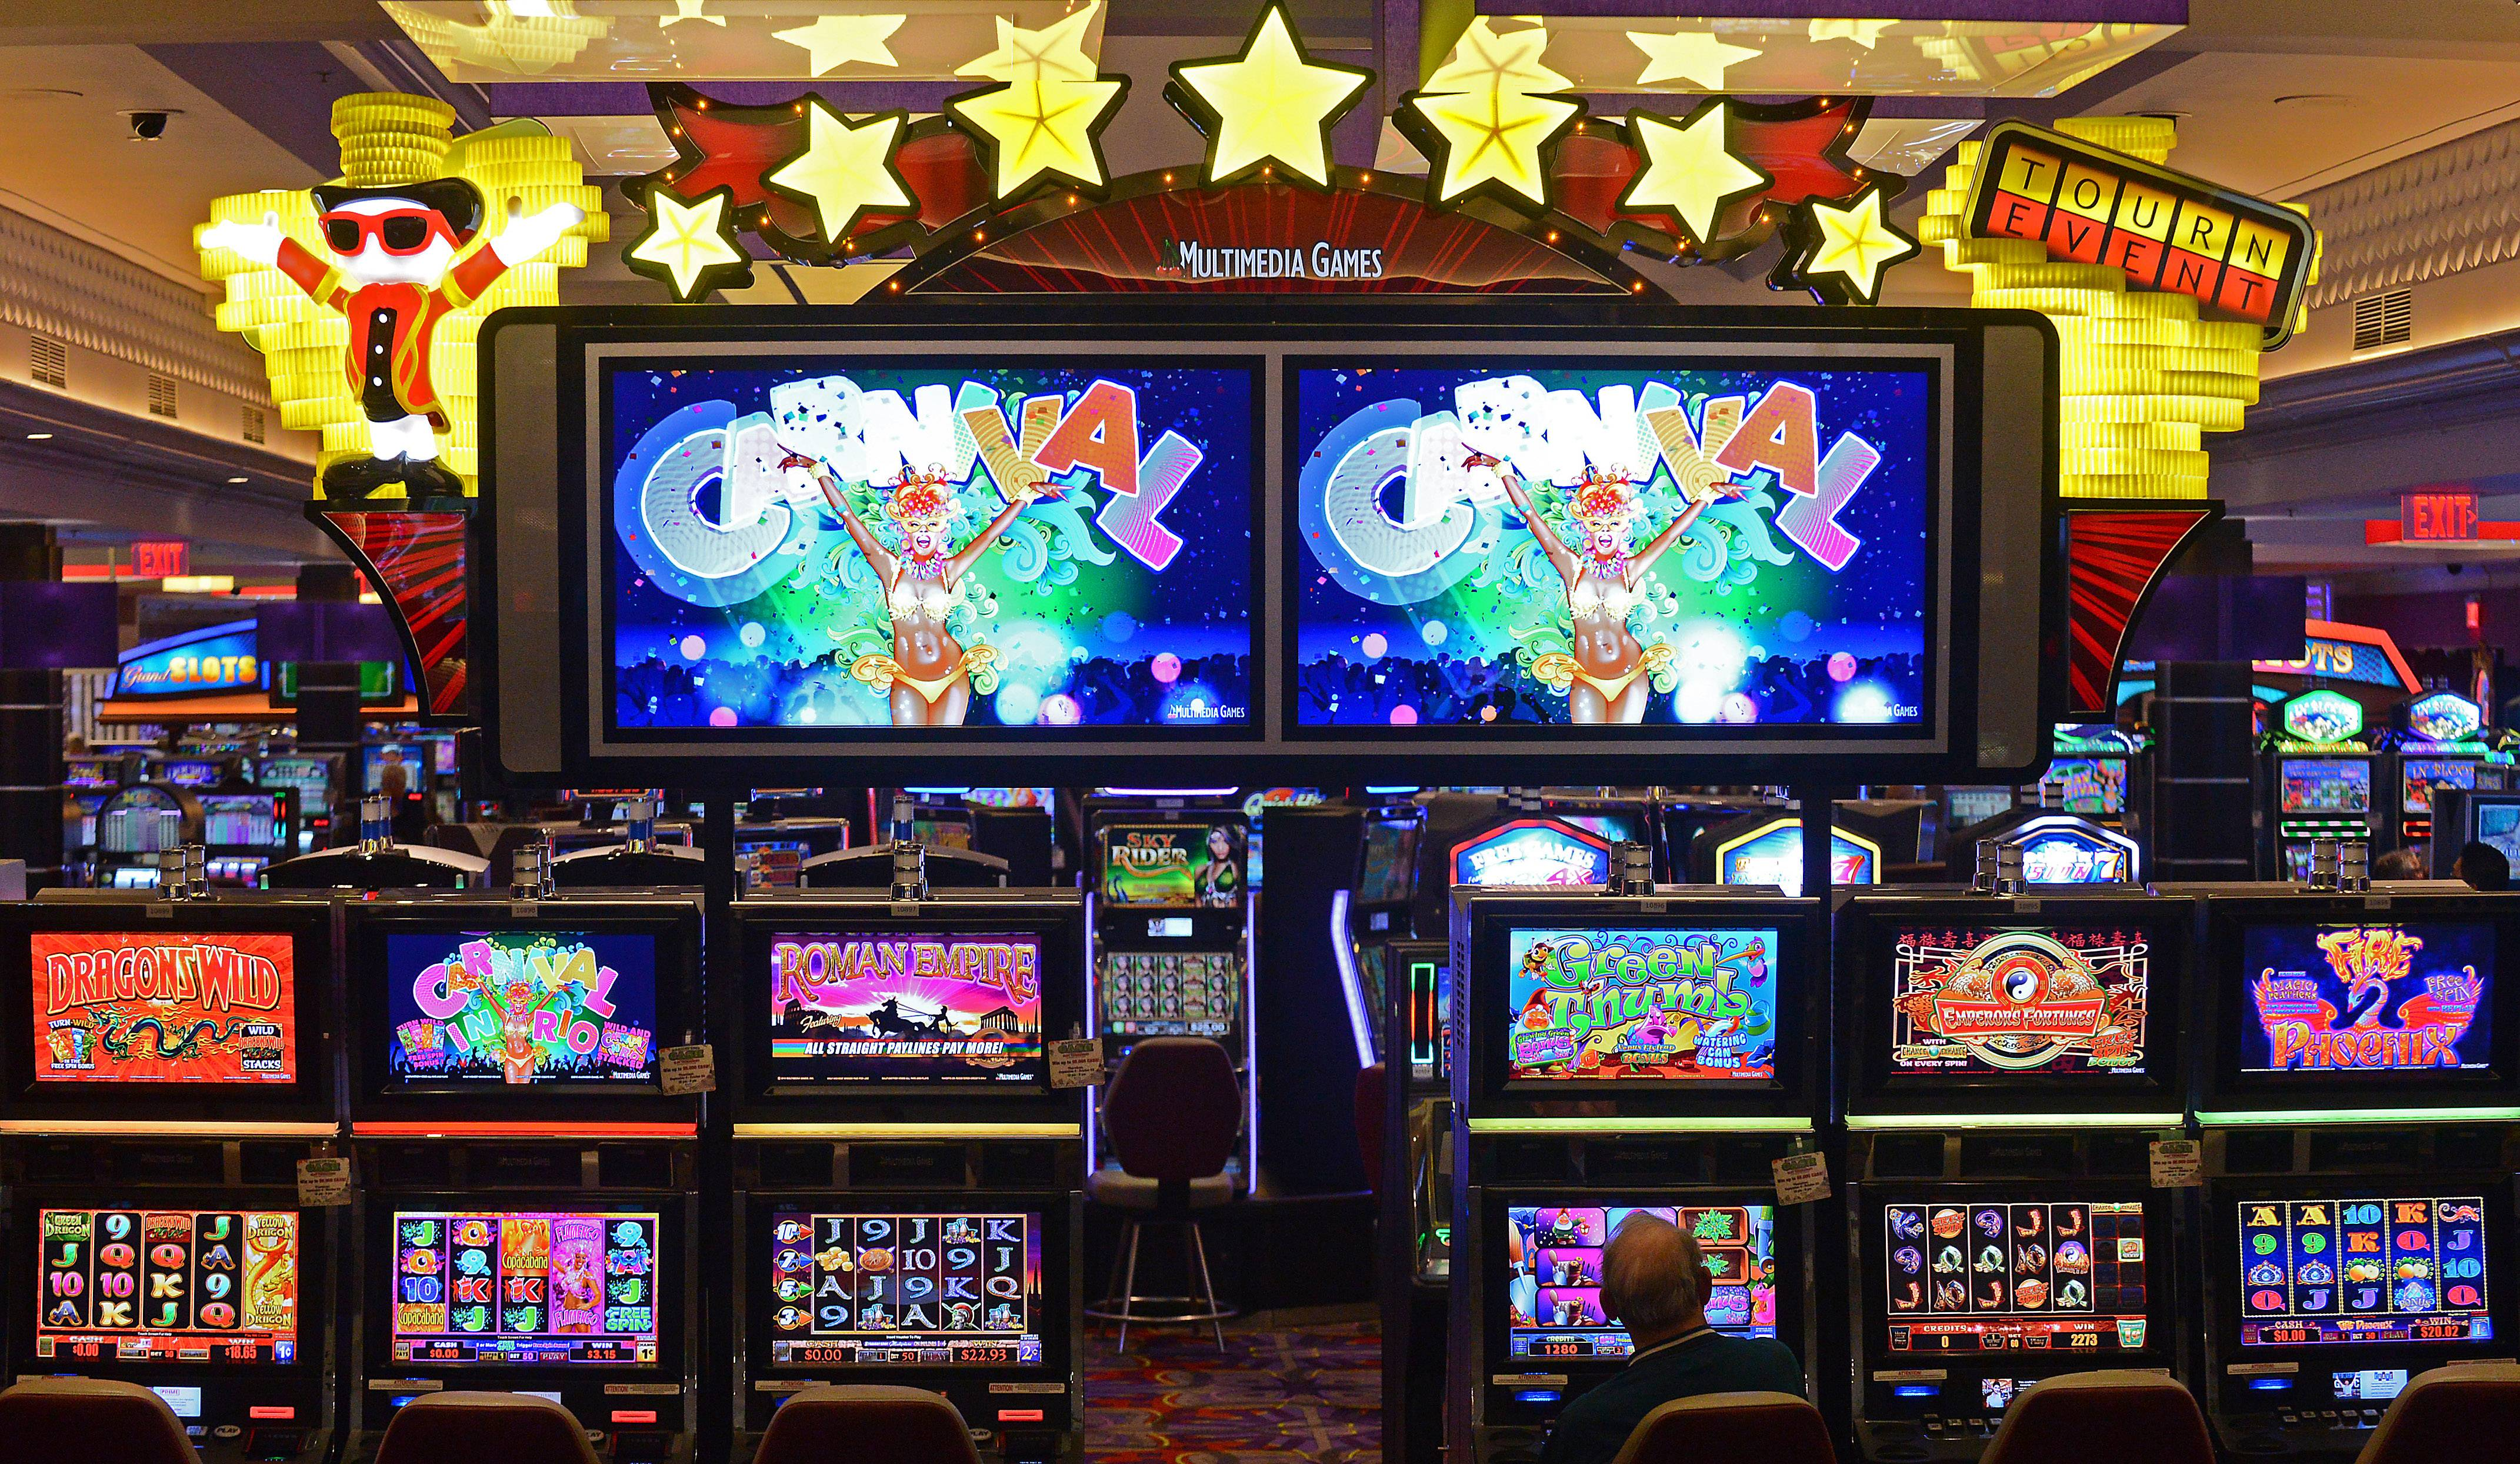 The Grand Victoria Casino in Elgin is celebrating its 20th anniversary next month. Casino officials said a recent renovation of the casino floor aimed for a brighter, more modern and spacious feel.